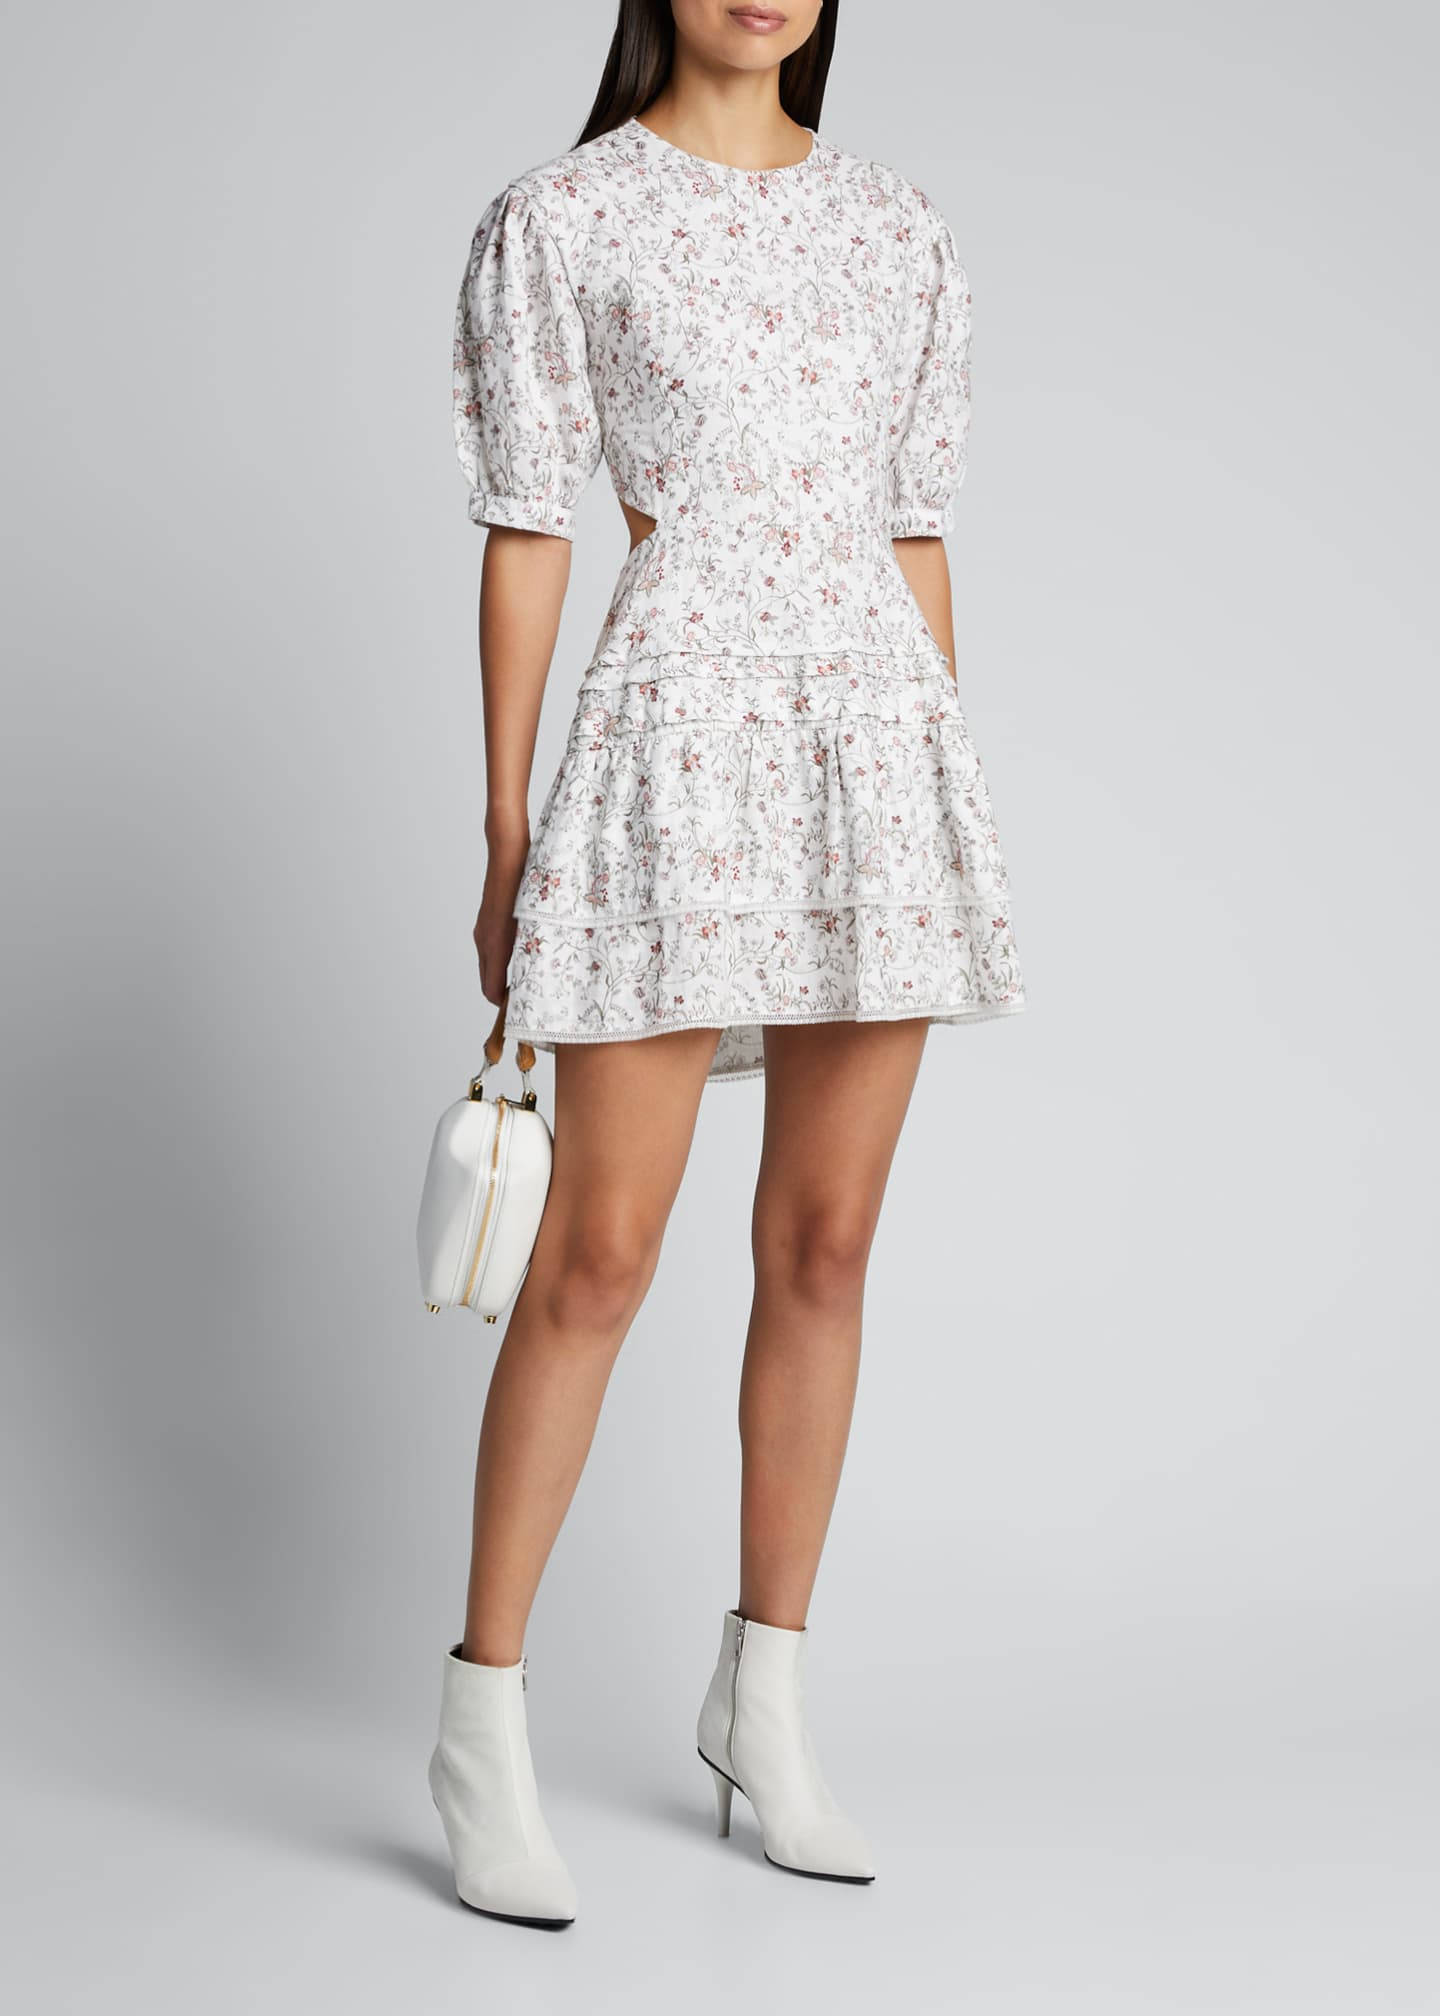 Image 1 of 5: Haisly Floral-Print Mini Dress